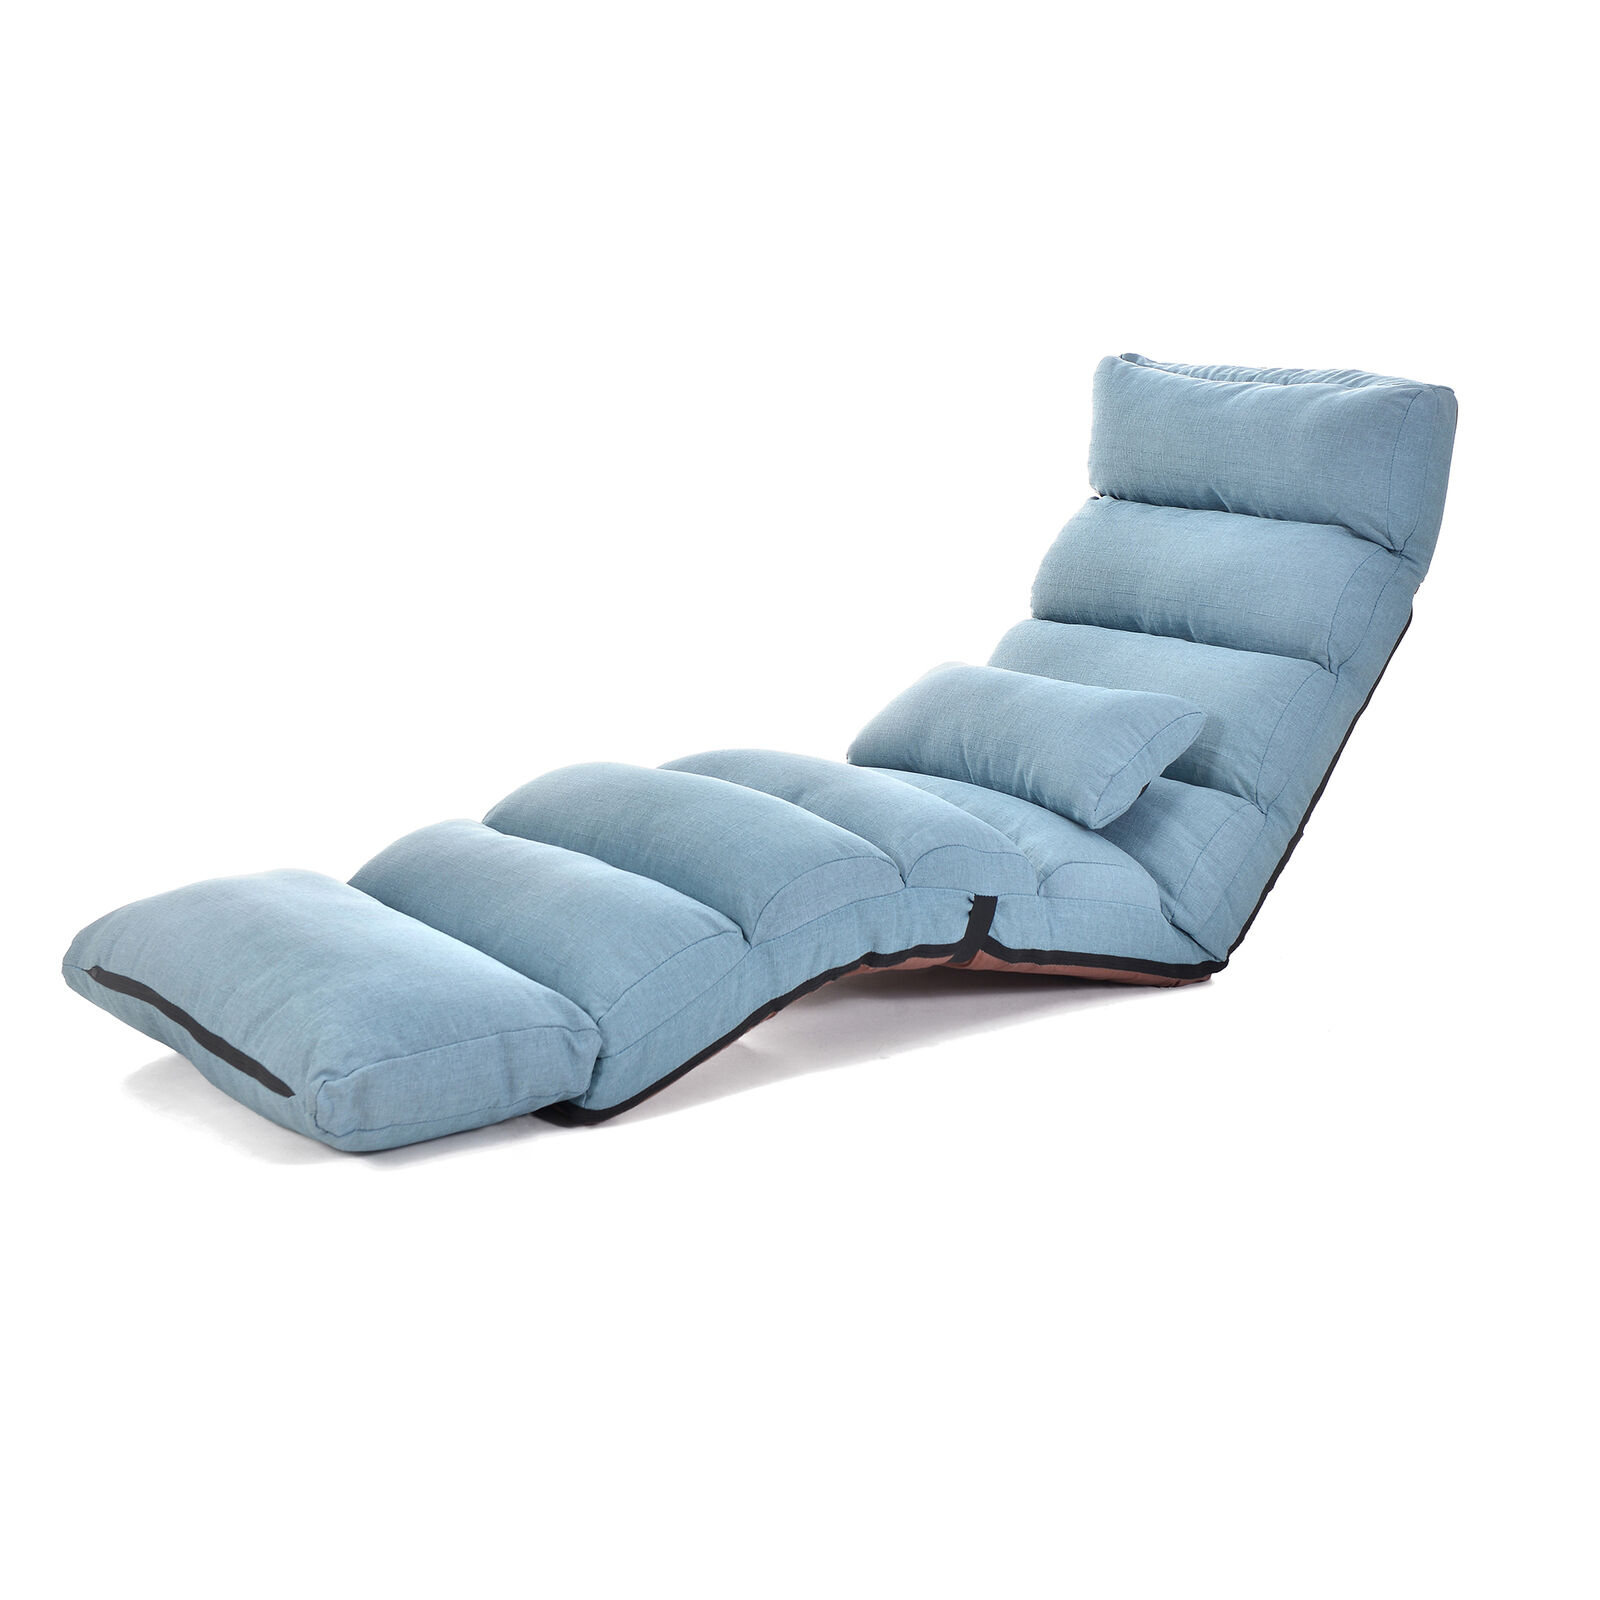 E More Home Adjustable Folding Lazy Floor Sofa Chair Stylish Couch Beds Lounge For Sale Online Ebay